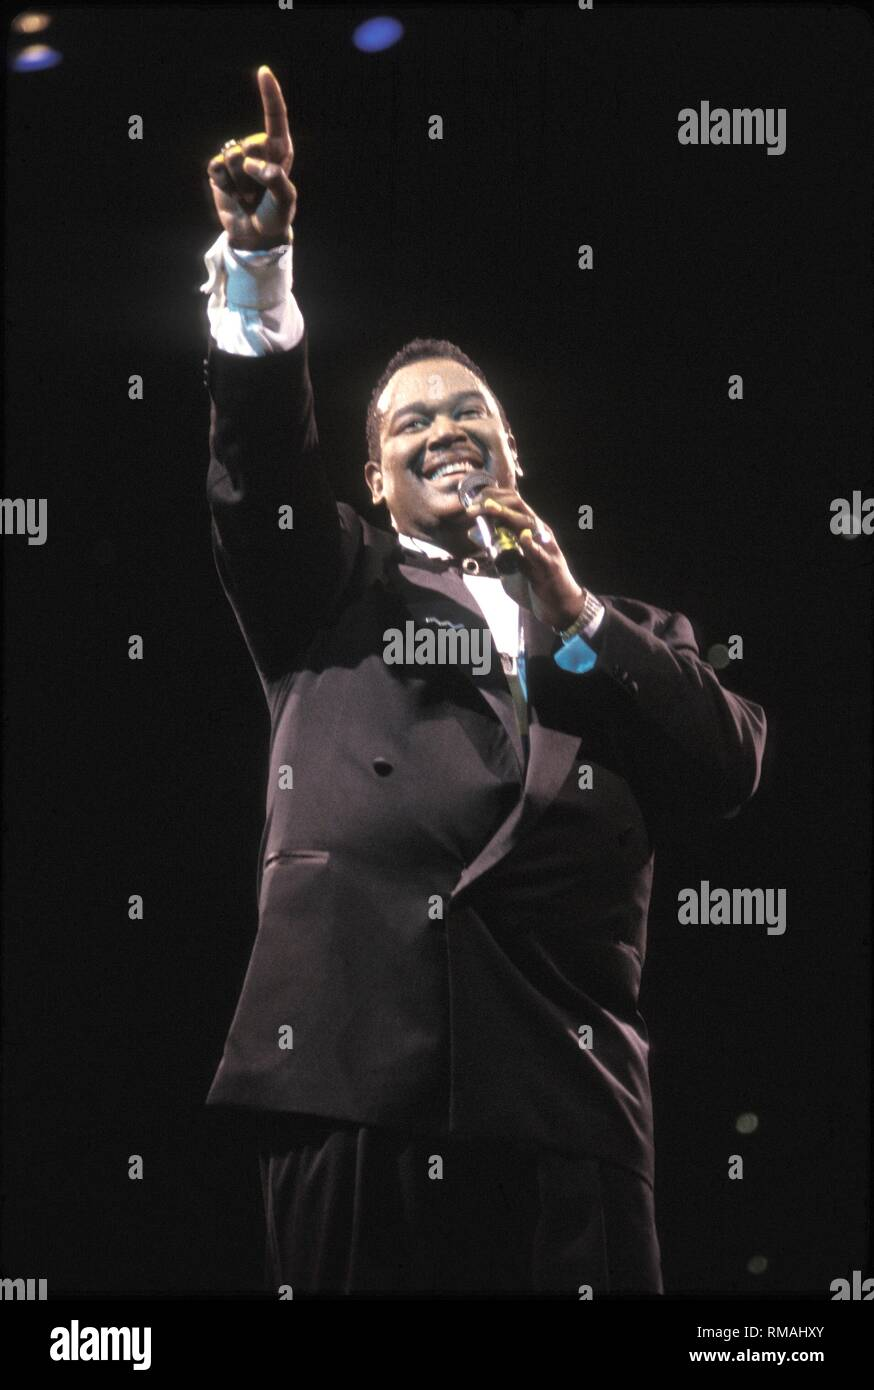 "R&B and soul singer, songwriter, and record producer Luther Vandross is shown performing onstage during a ""live"" concert appearance. Stock Photo"